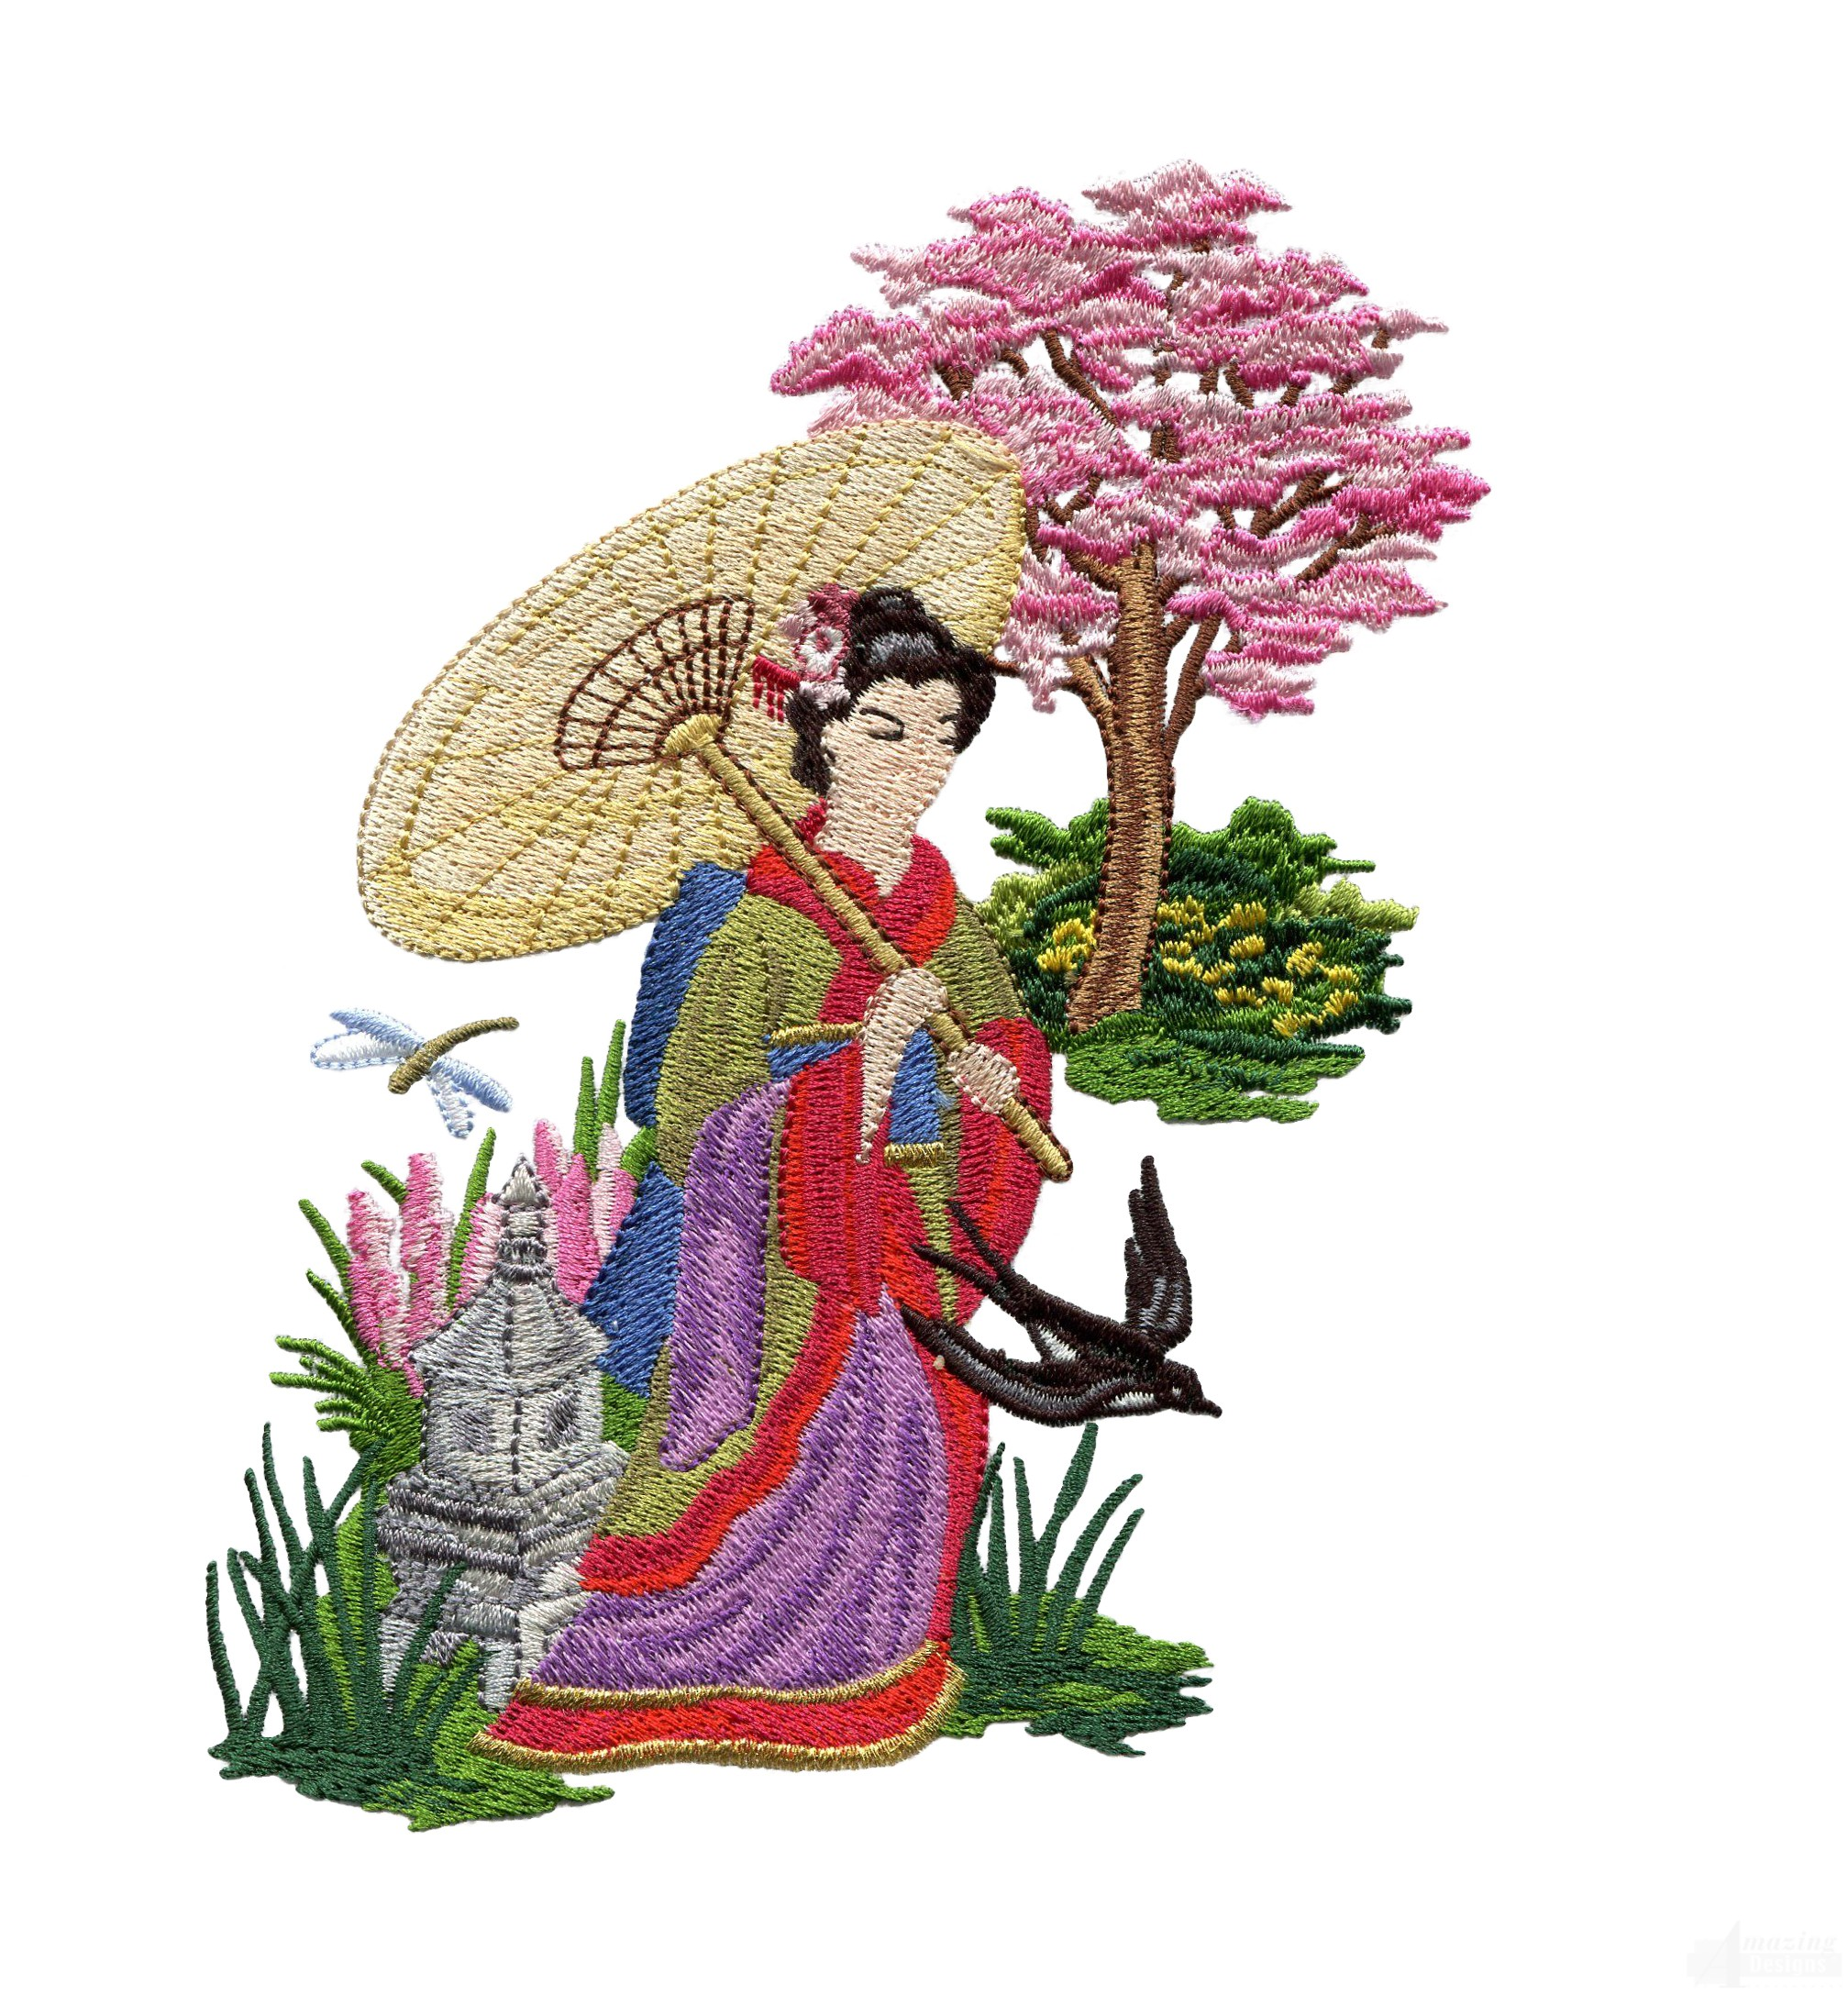 Swngg111 a geishas garden embroidery design for Garden embroidery designs free